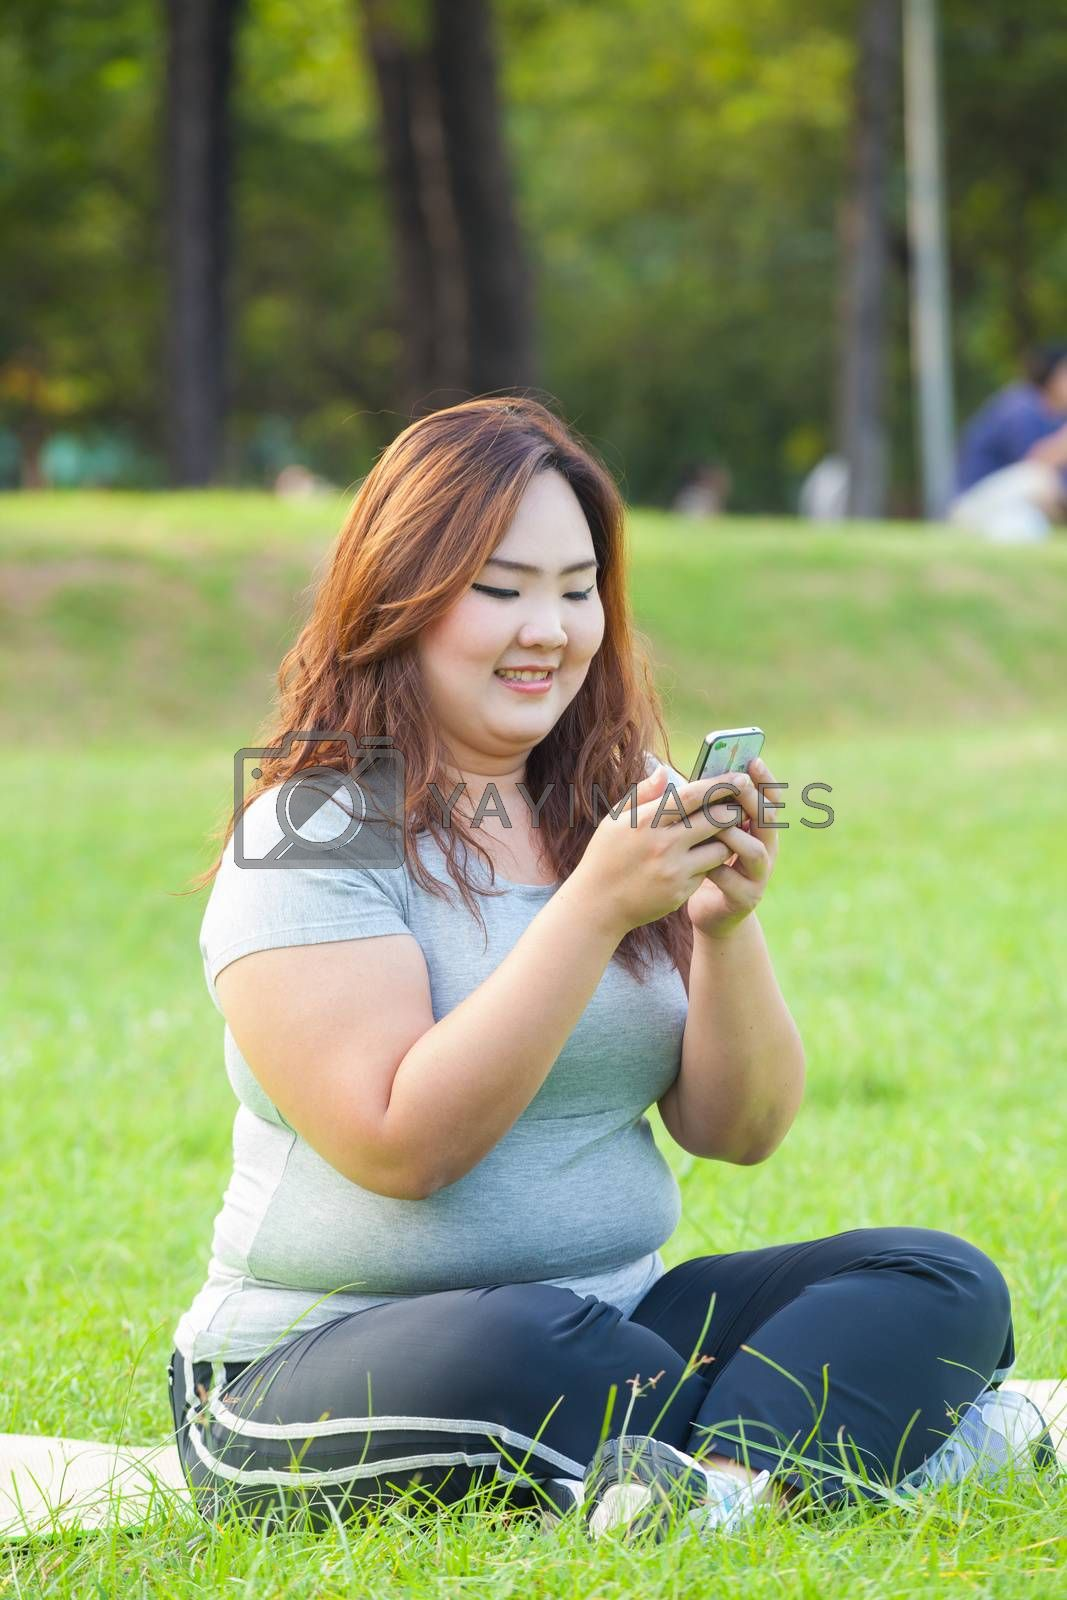 Happy fatty asian woman using mobile phone outdoor in a park